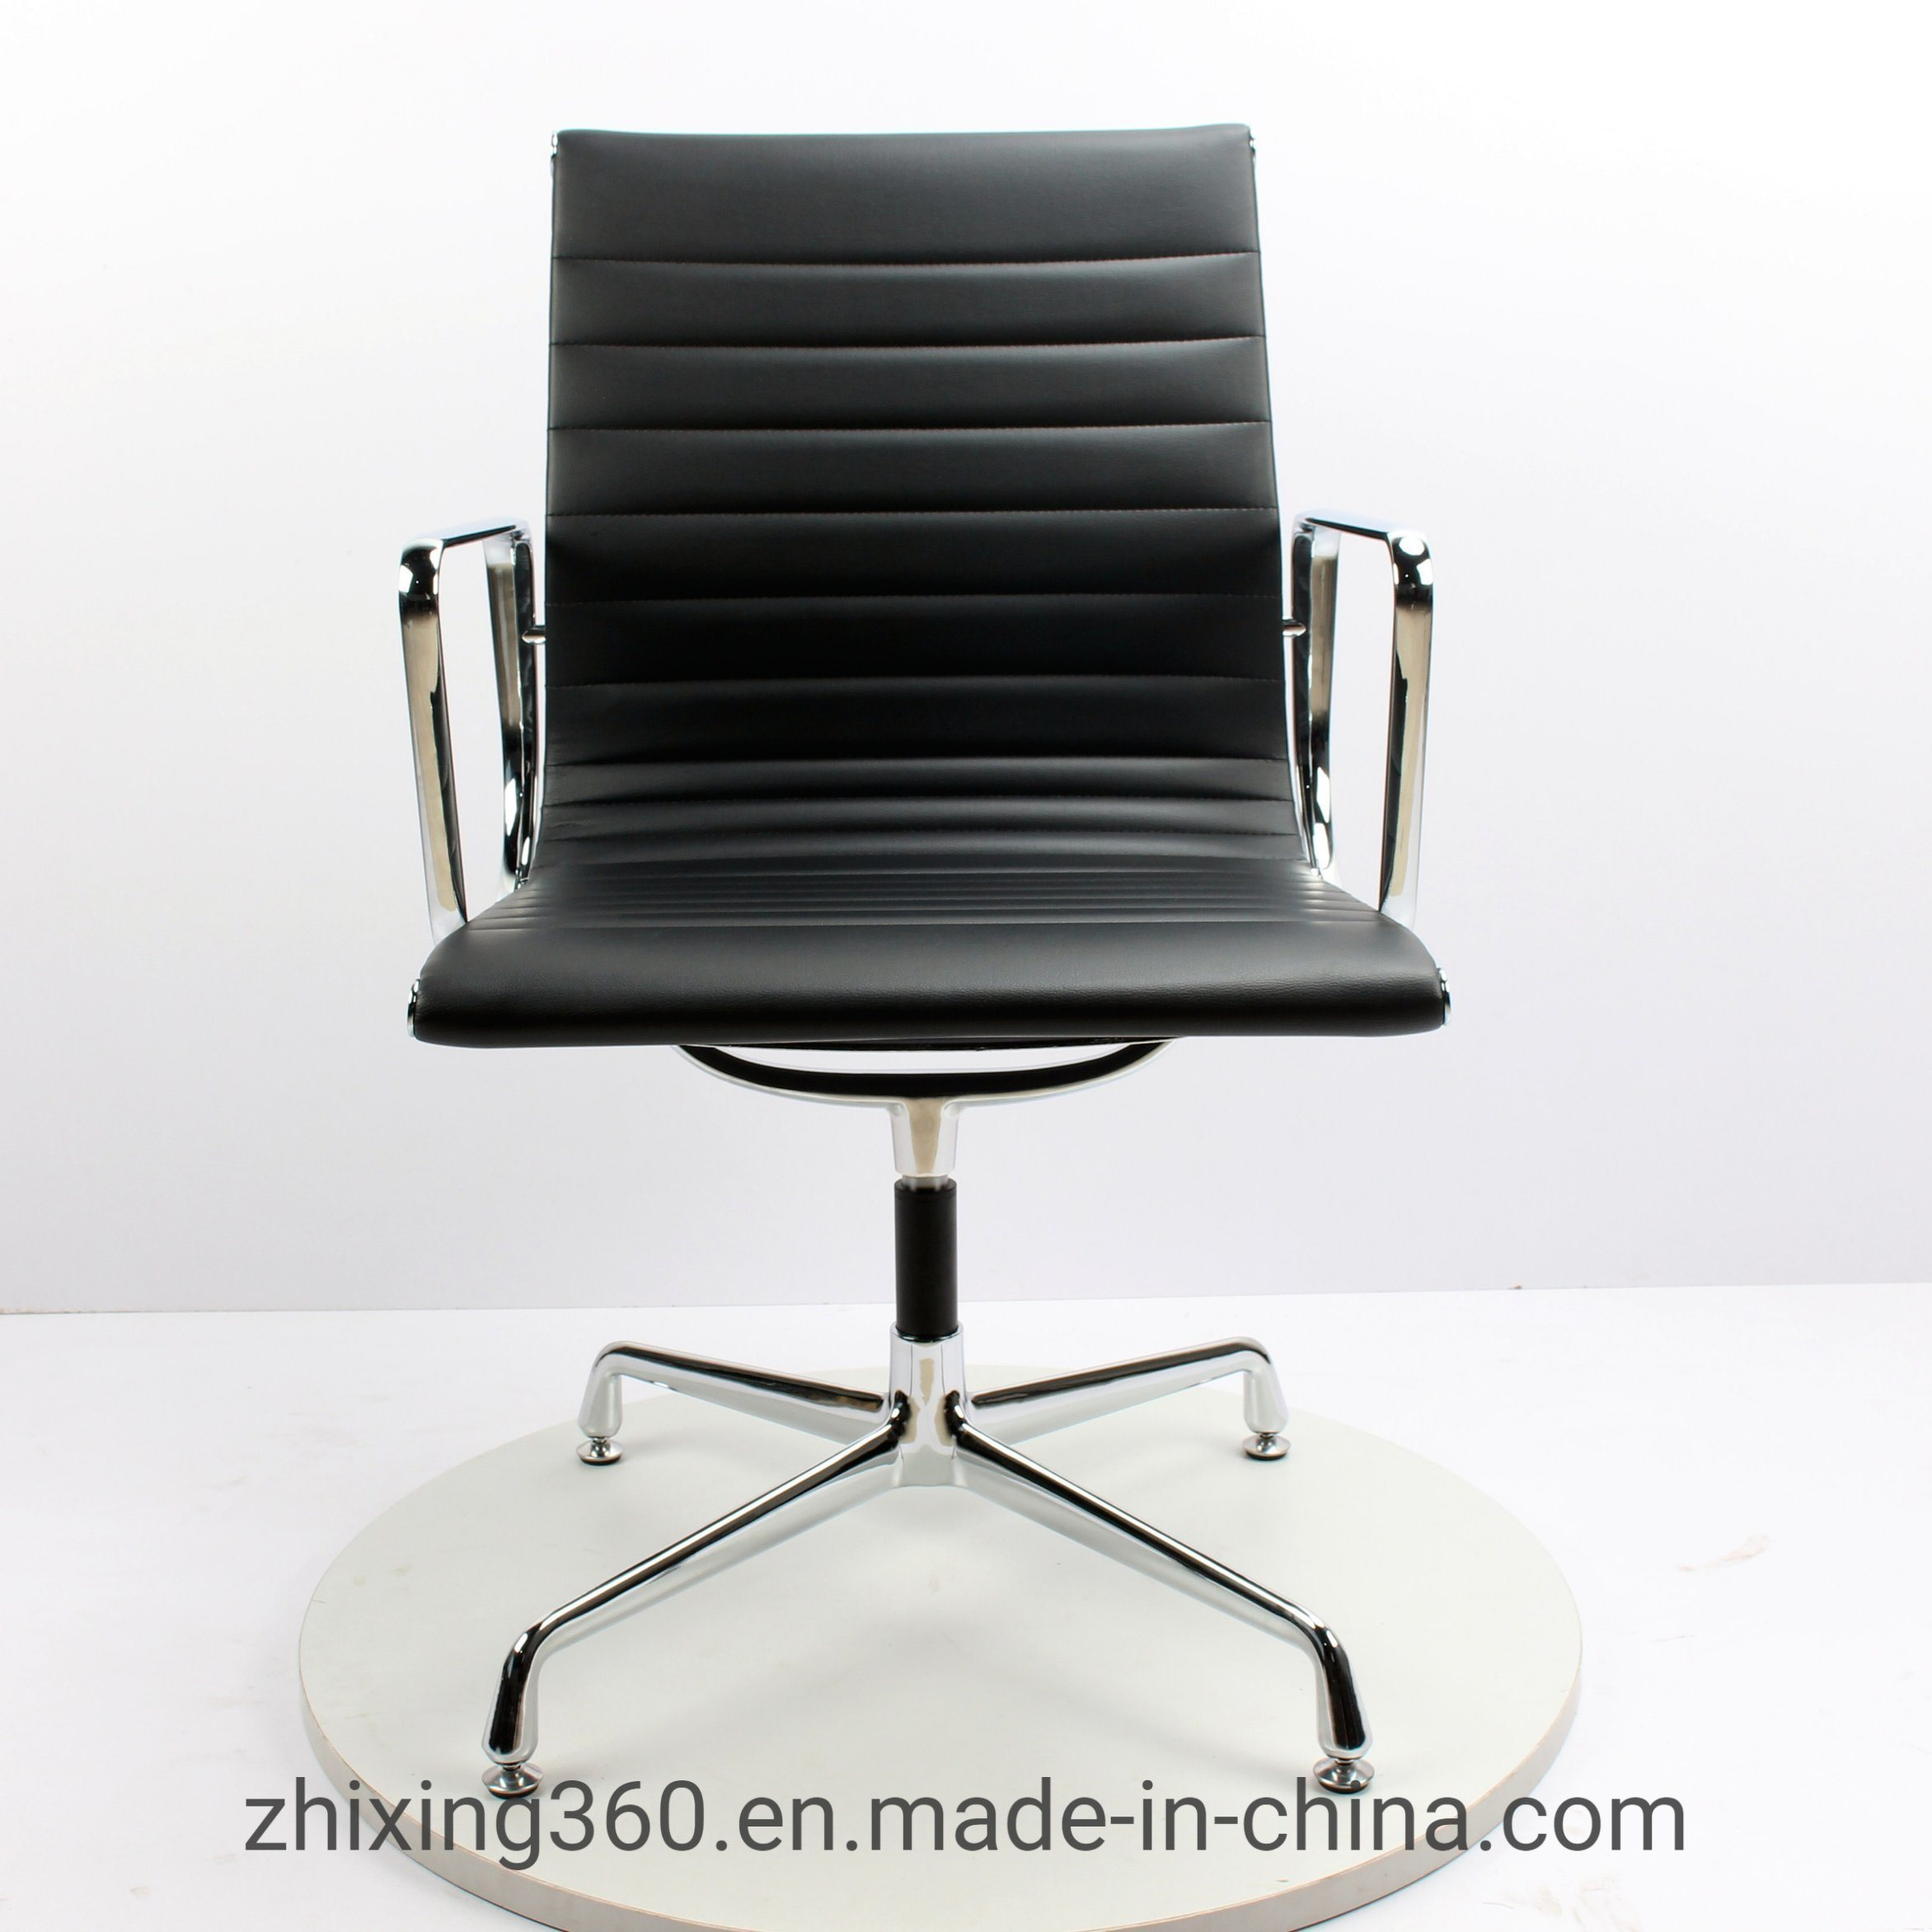 [Hot Item] Eames Modern Leather Office Chair Manager Chair Office Chair